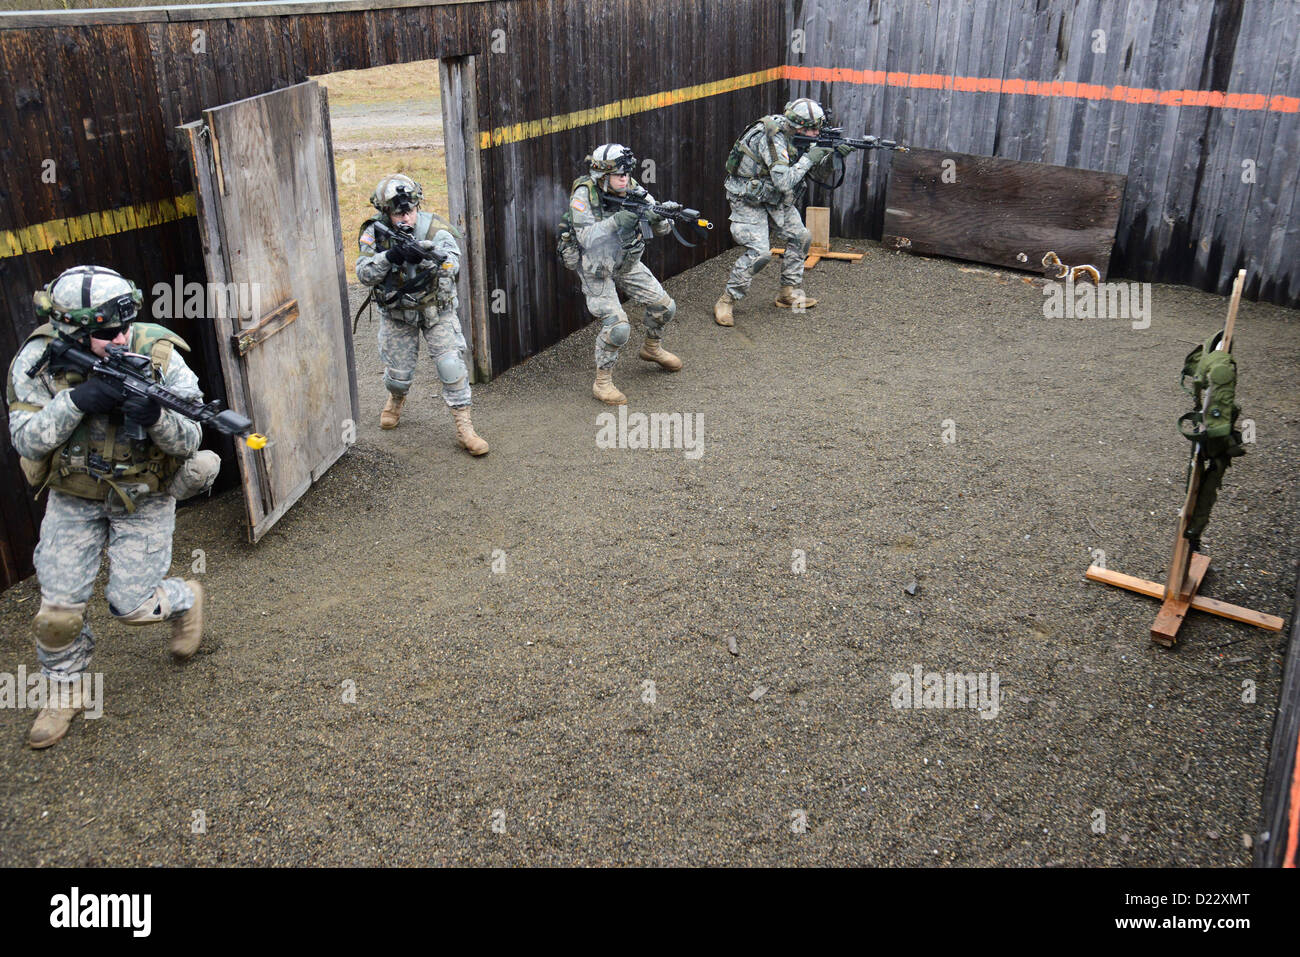 U.S. Army Soldiers, assigned to Bravo Company, 1st Battalion, 4th Infantry Regiment, practice clearing a building Stock Photo